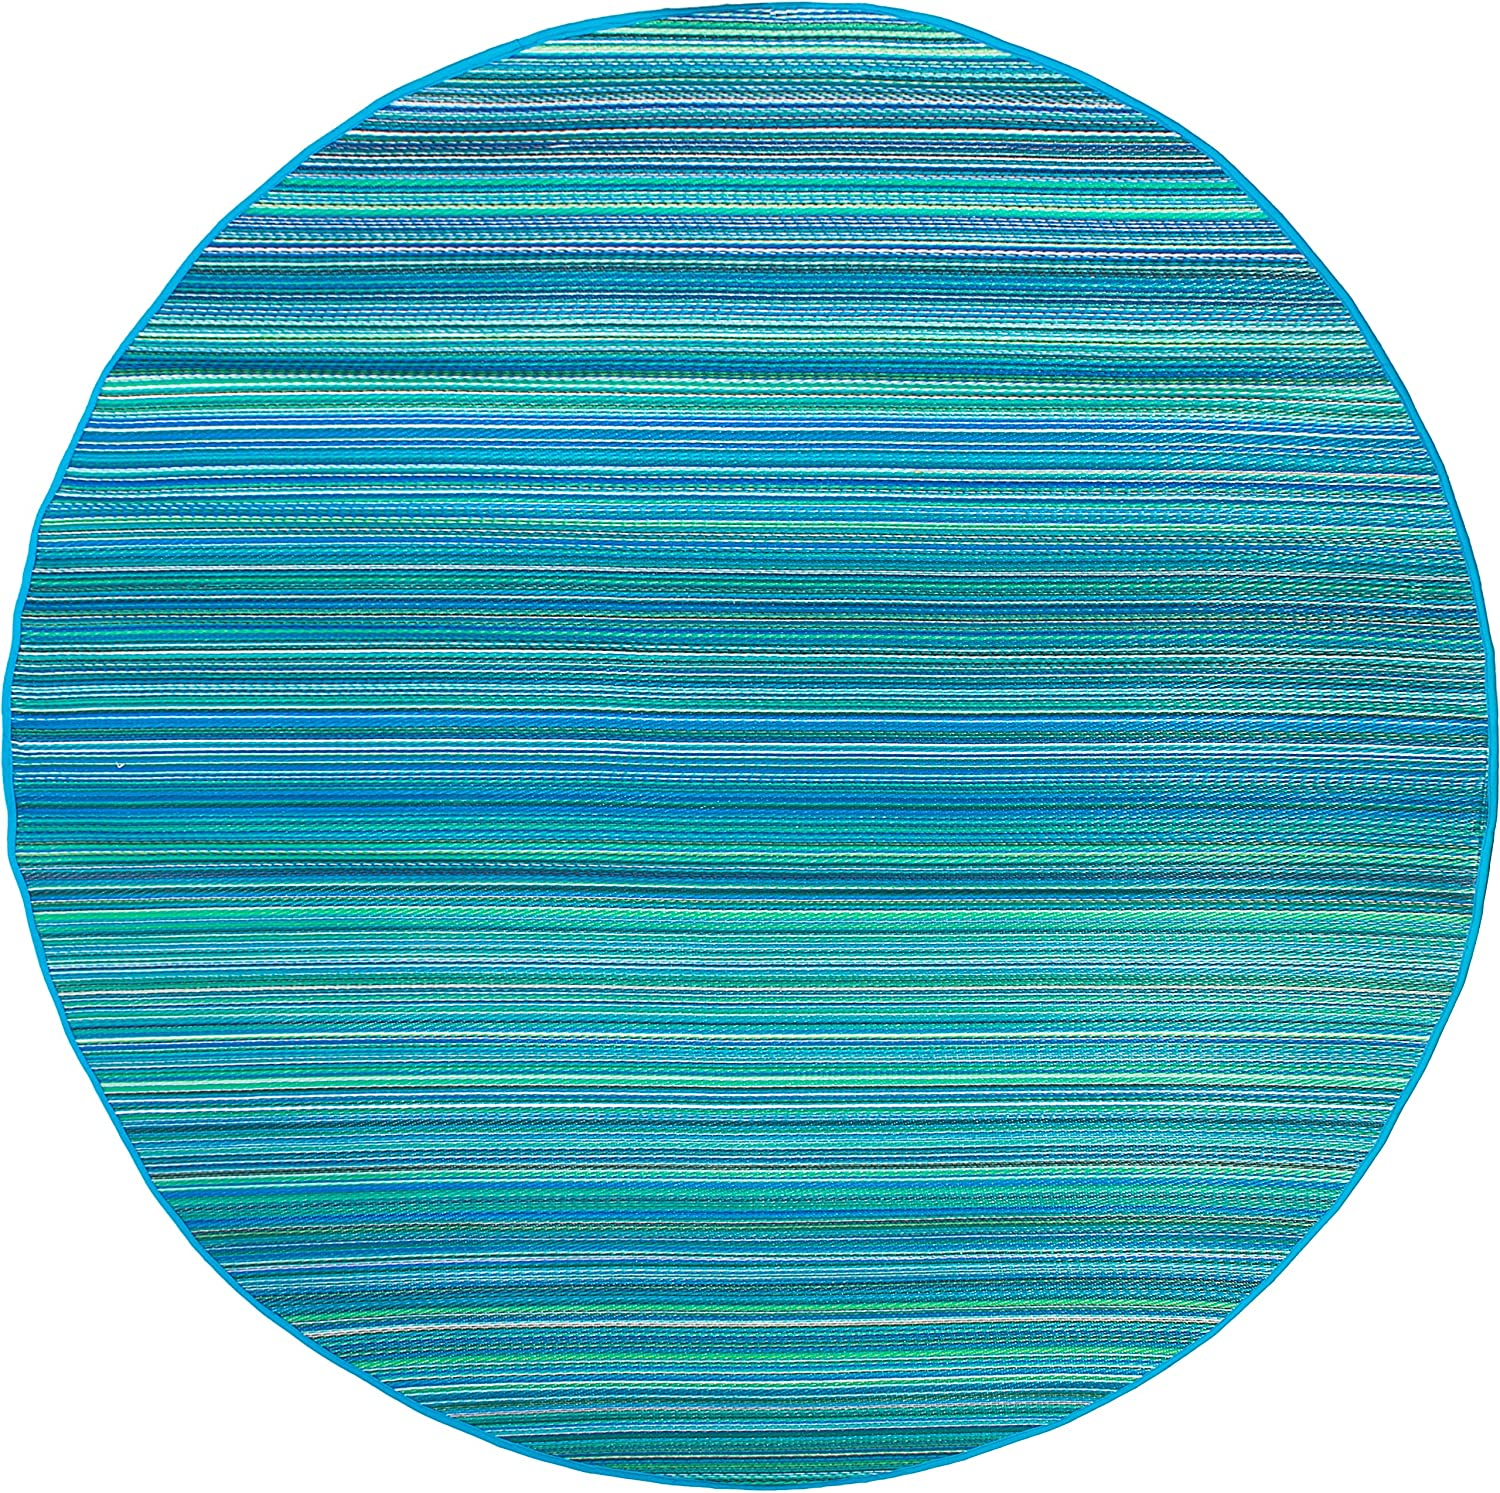 Fab Habitat Reversible Rugs | Indoor or Outdoor Use | Stain Resistant, Easy to Clean Weather Resistant Floor Mats | Cancun - Turquoise & Moss Green, 8' Round